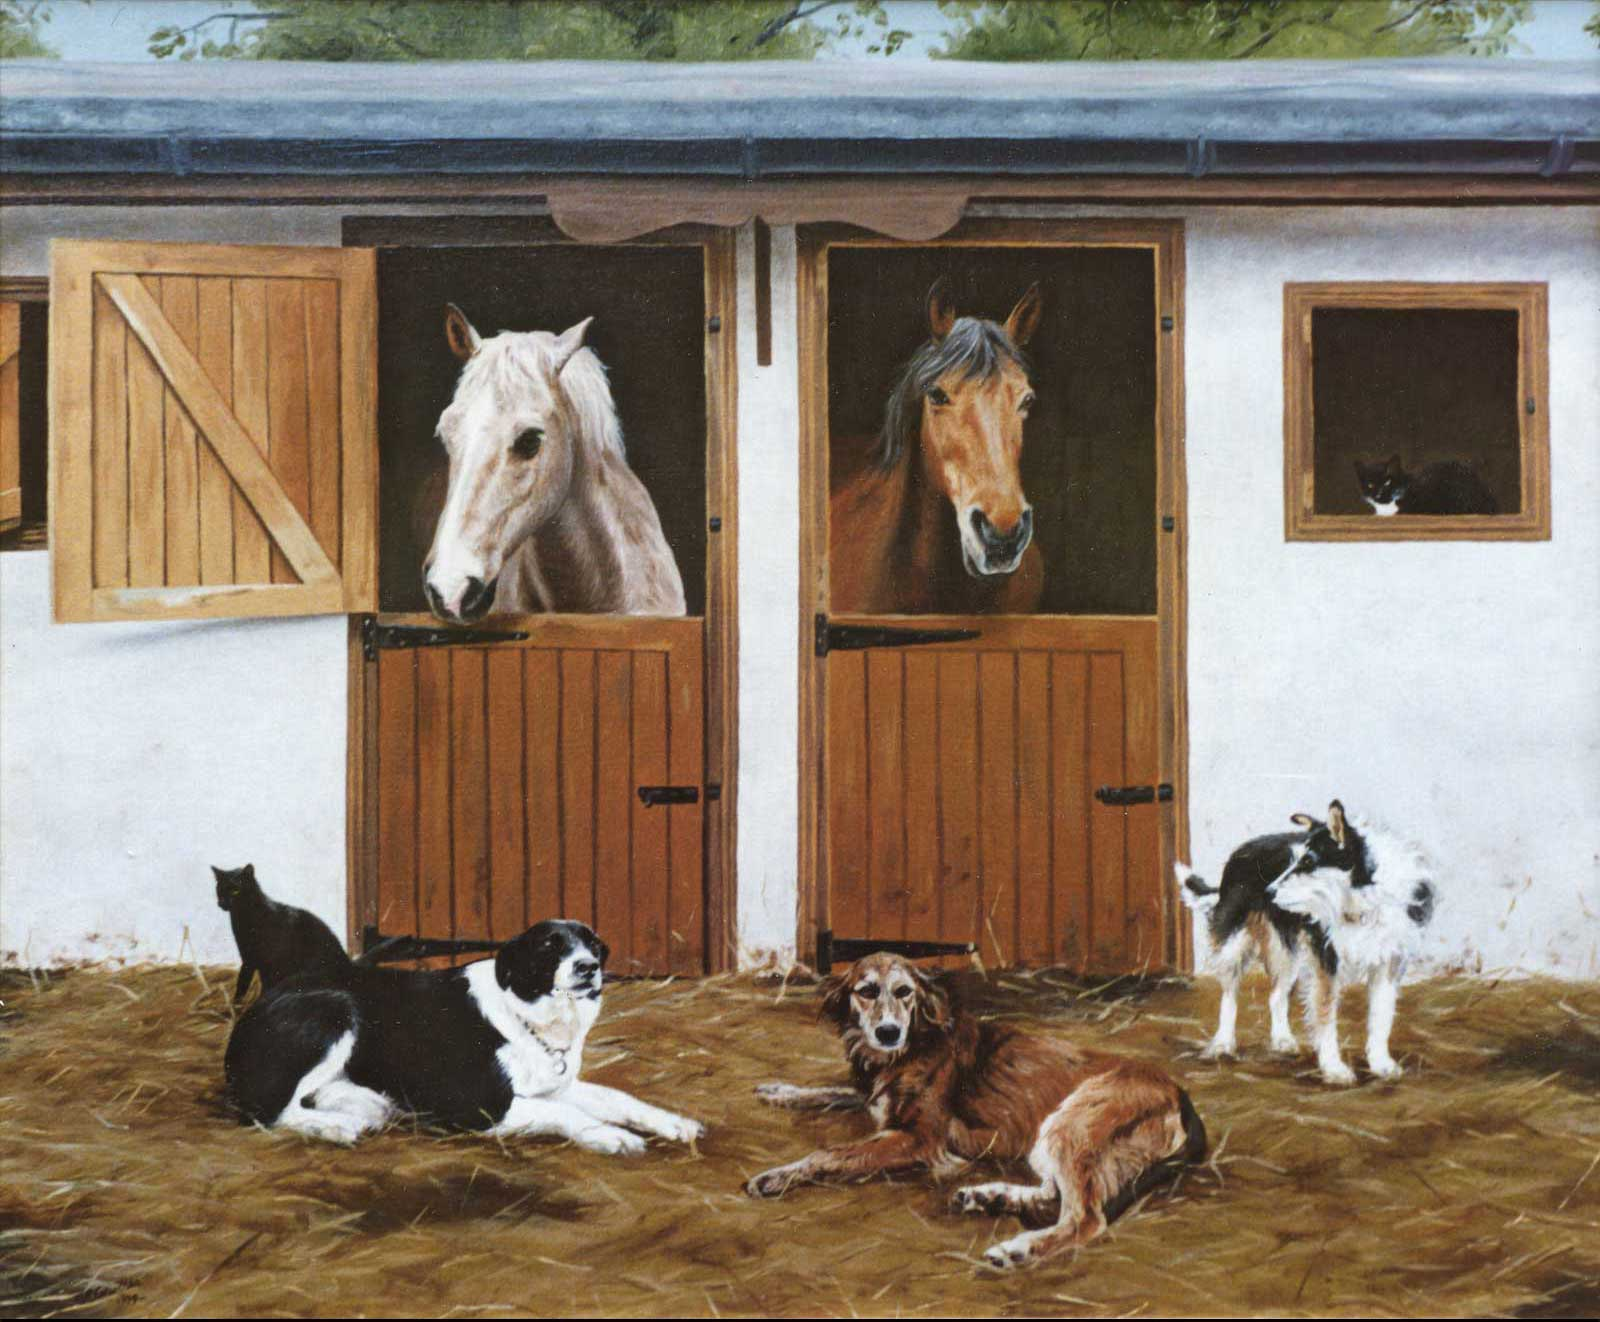 Horses and dogs at the stable, oil painting on canvas